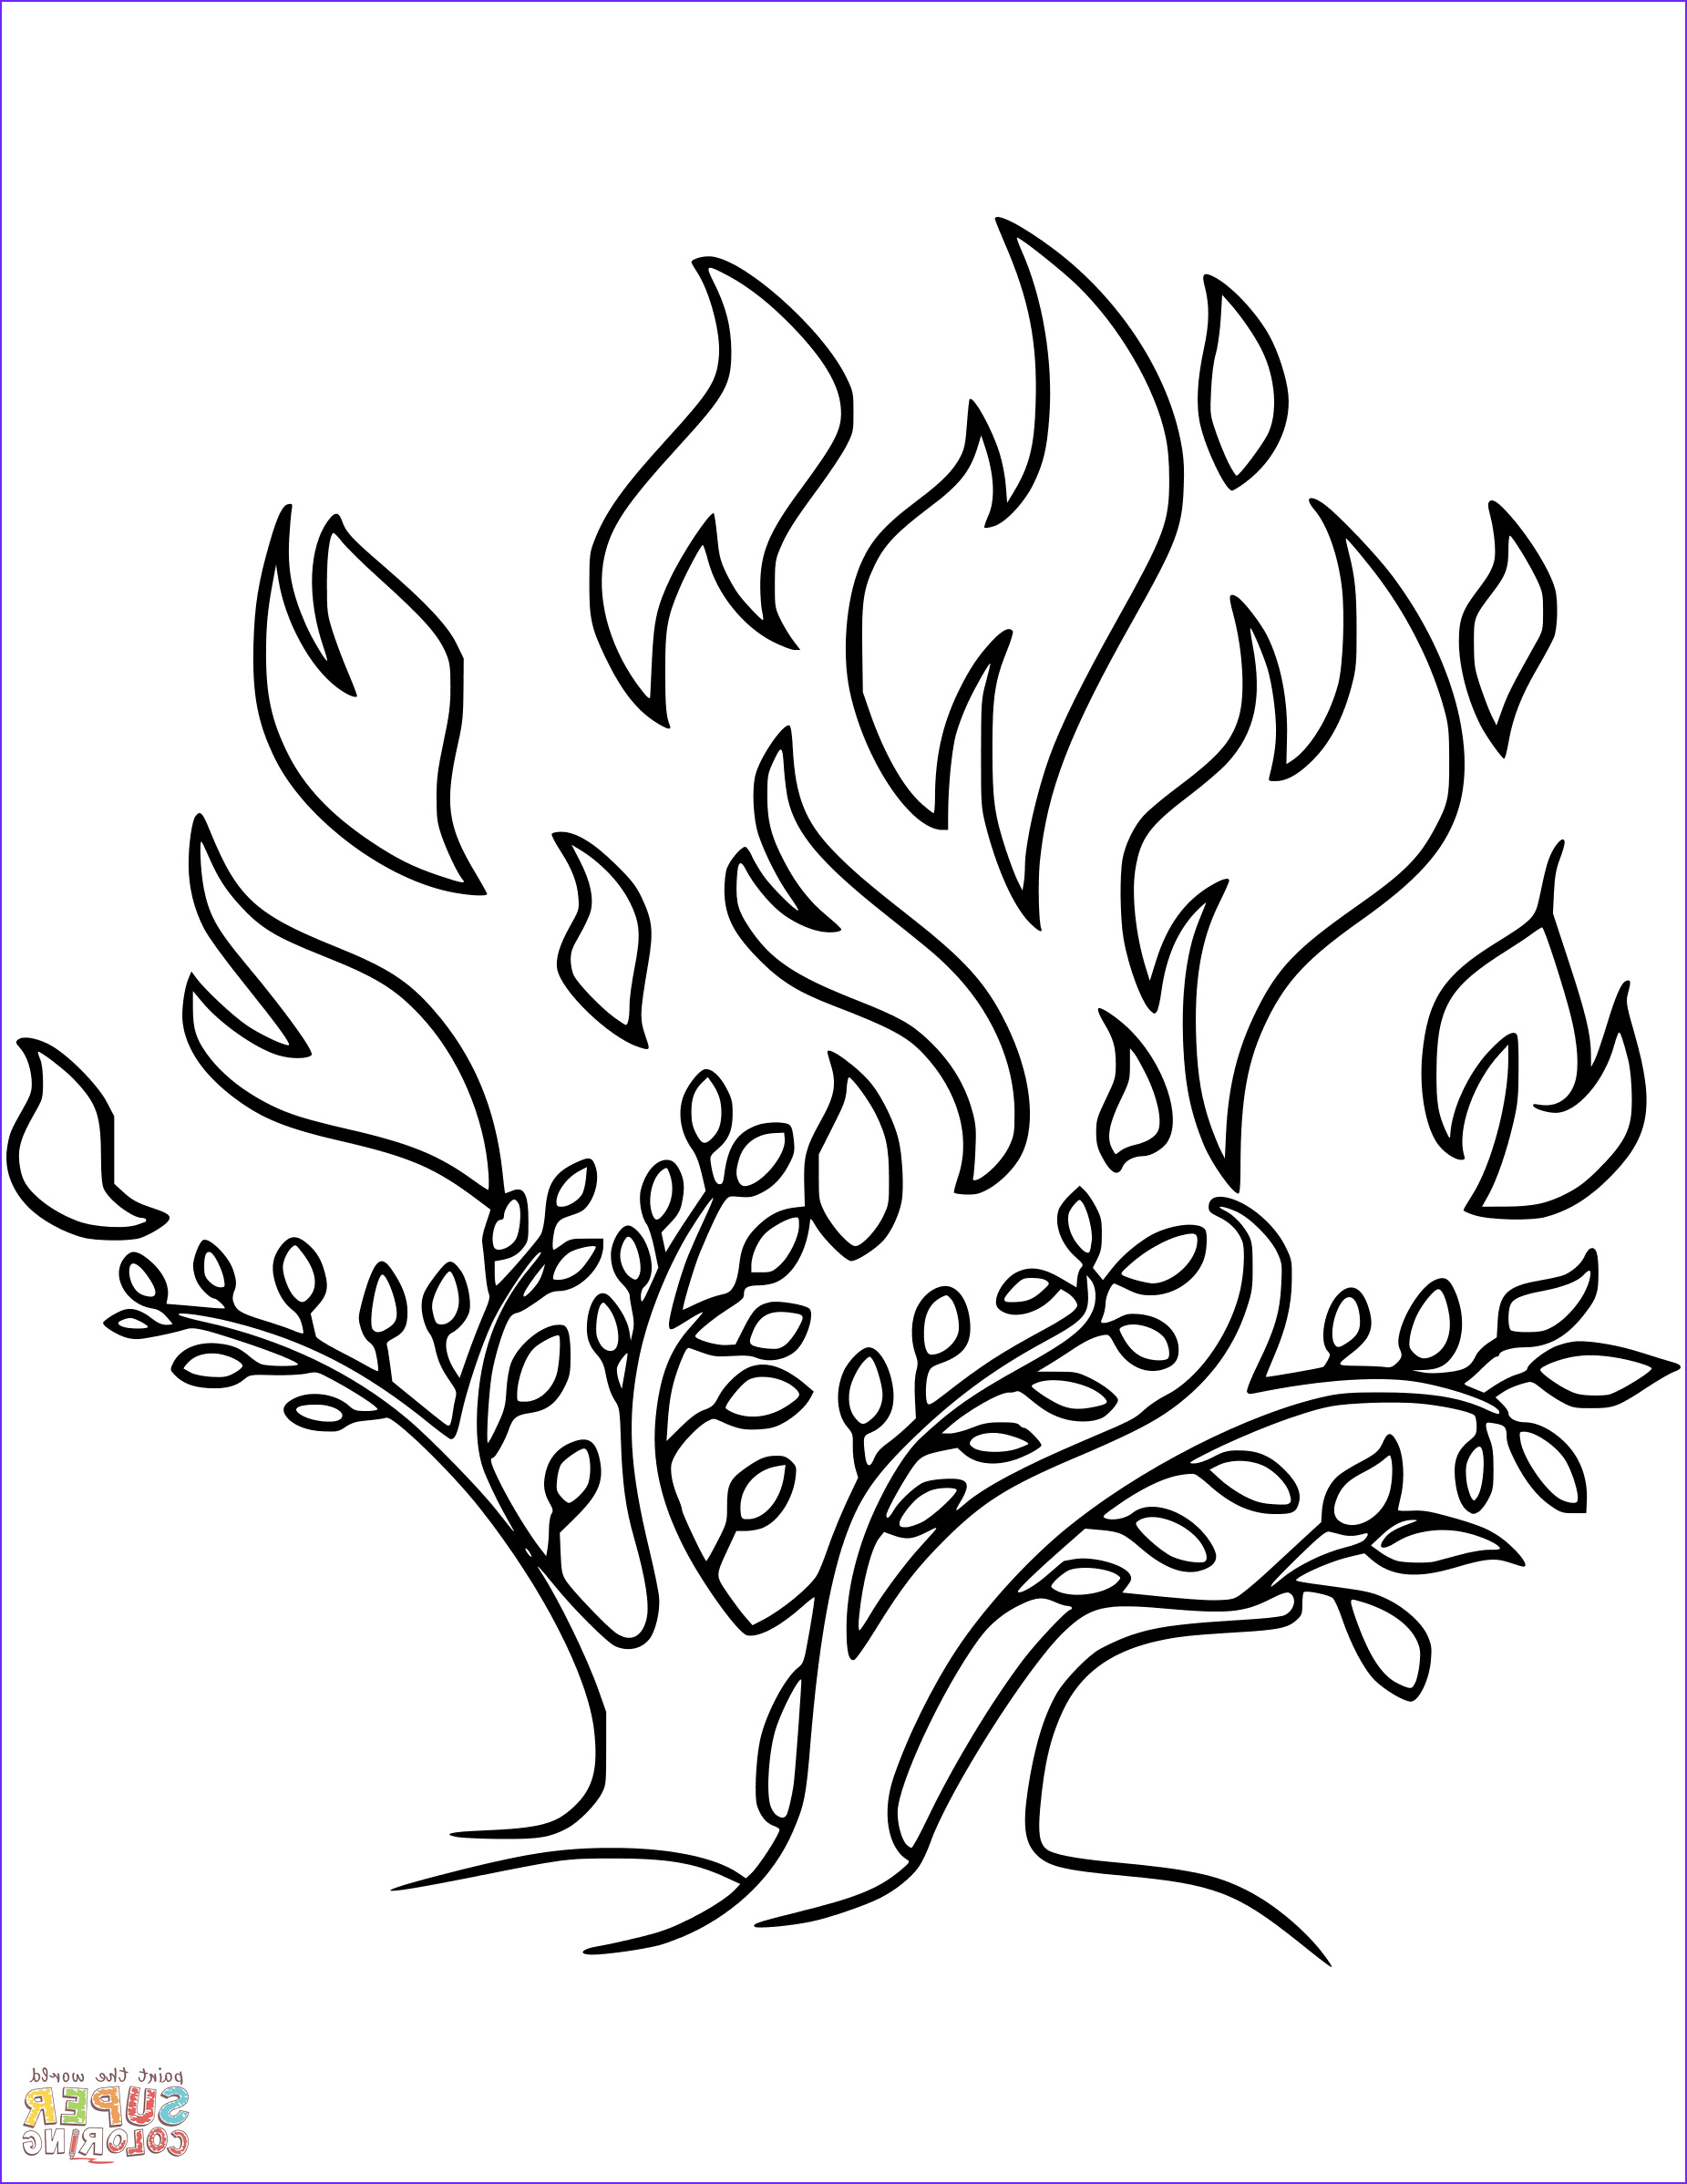 Moses and the Burning Bush Coloring Pages Best Of Photos the Burning Bush Coloring Page